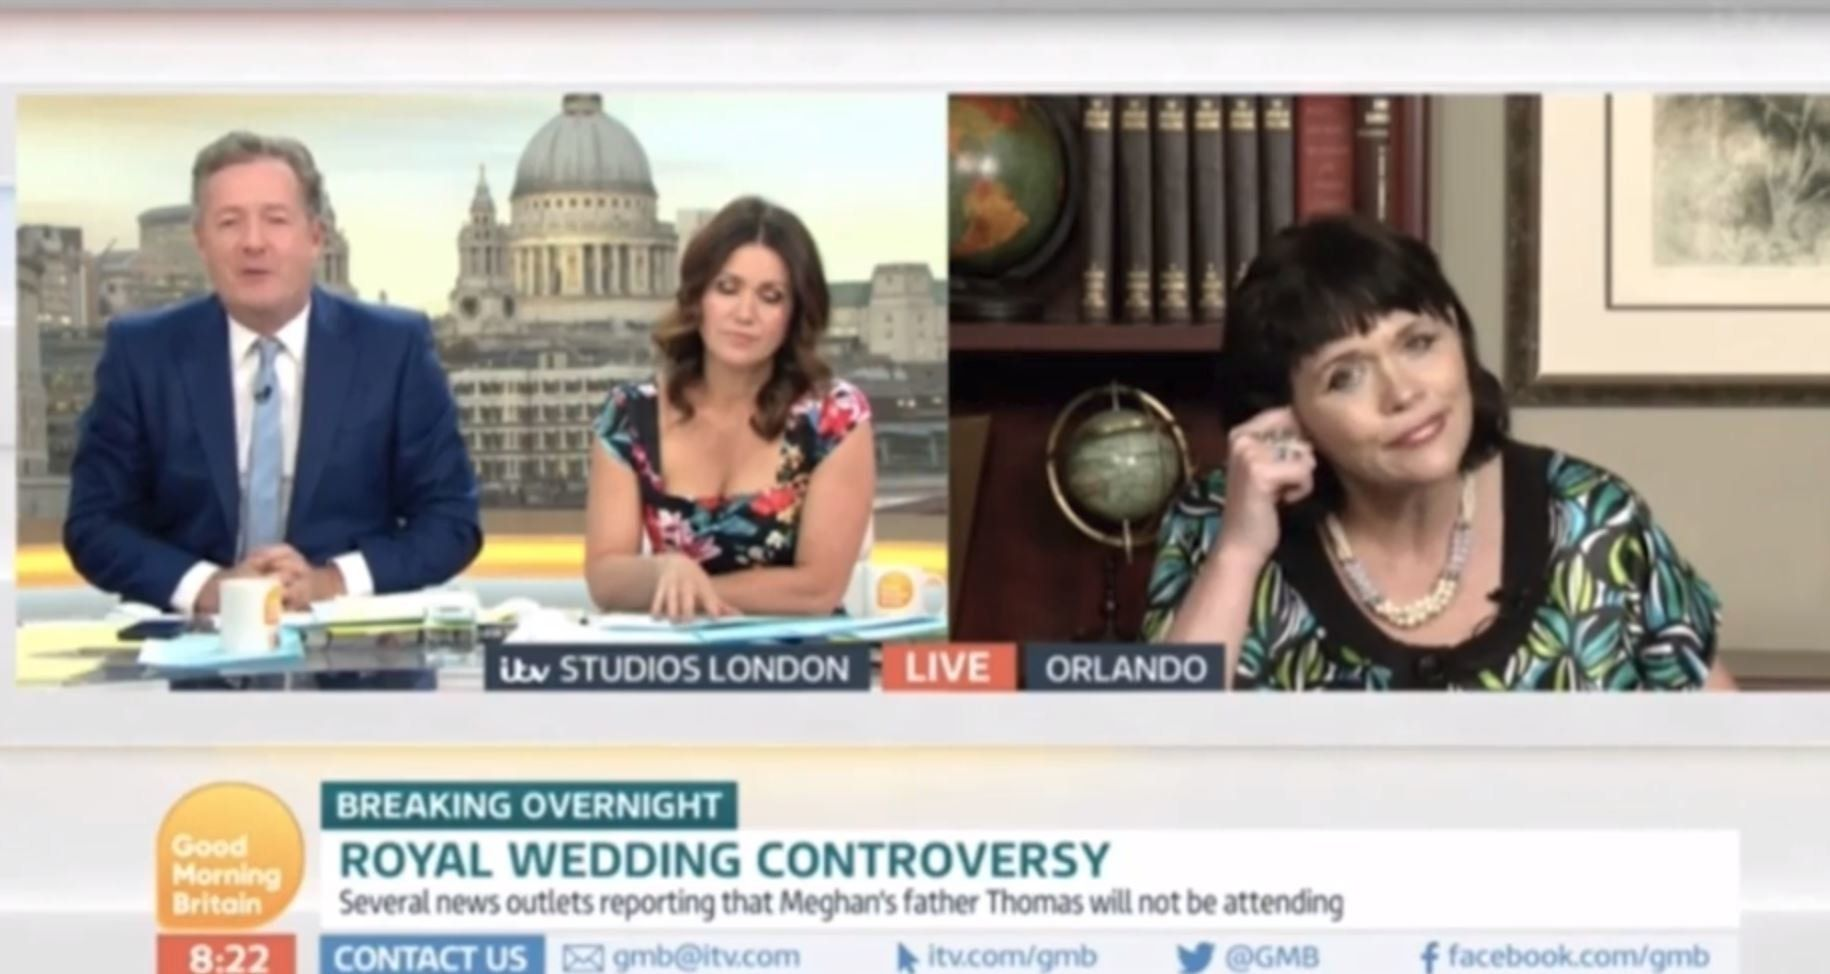 Piers Morgan Brands Meghan Markle's Half-Sister A 'Media Vulture' In 'Good Morning Britain' Clash